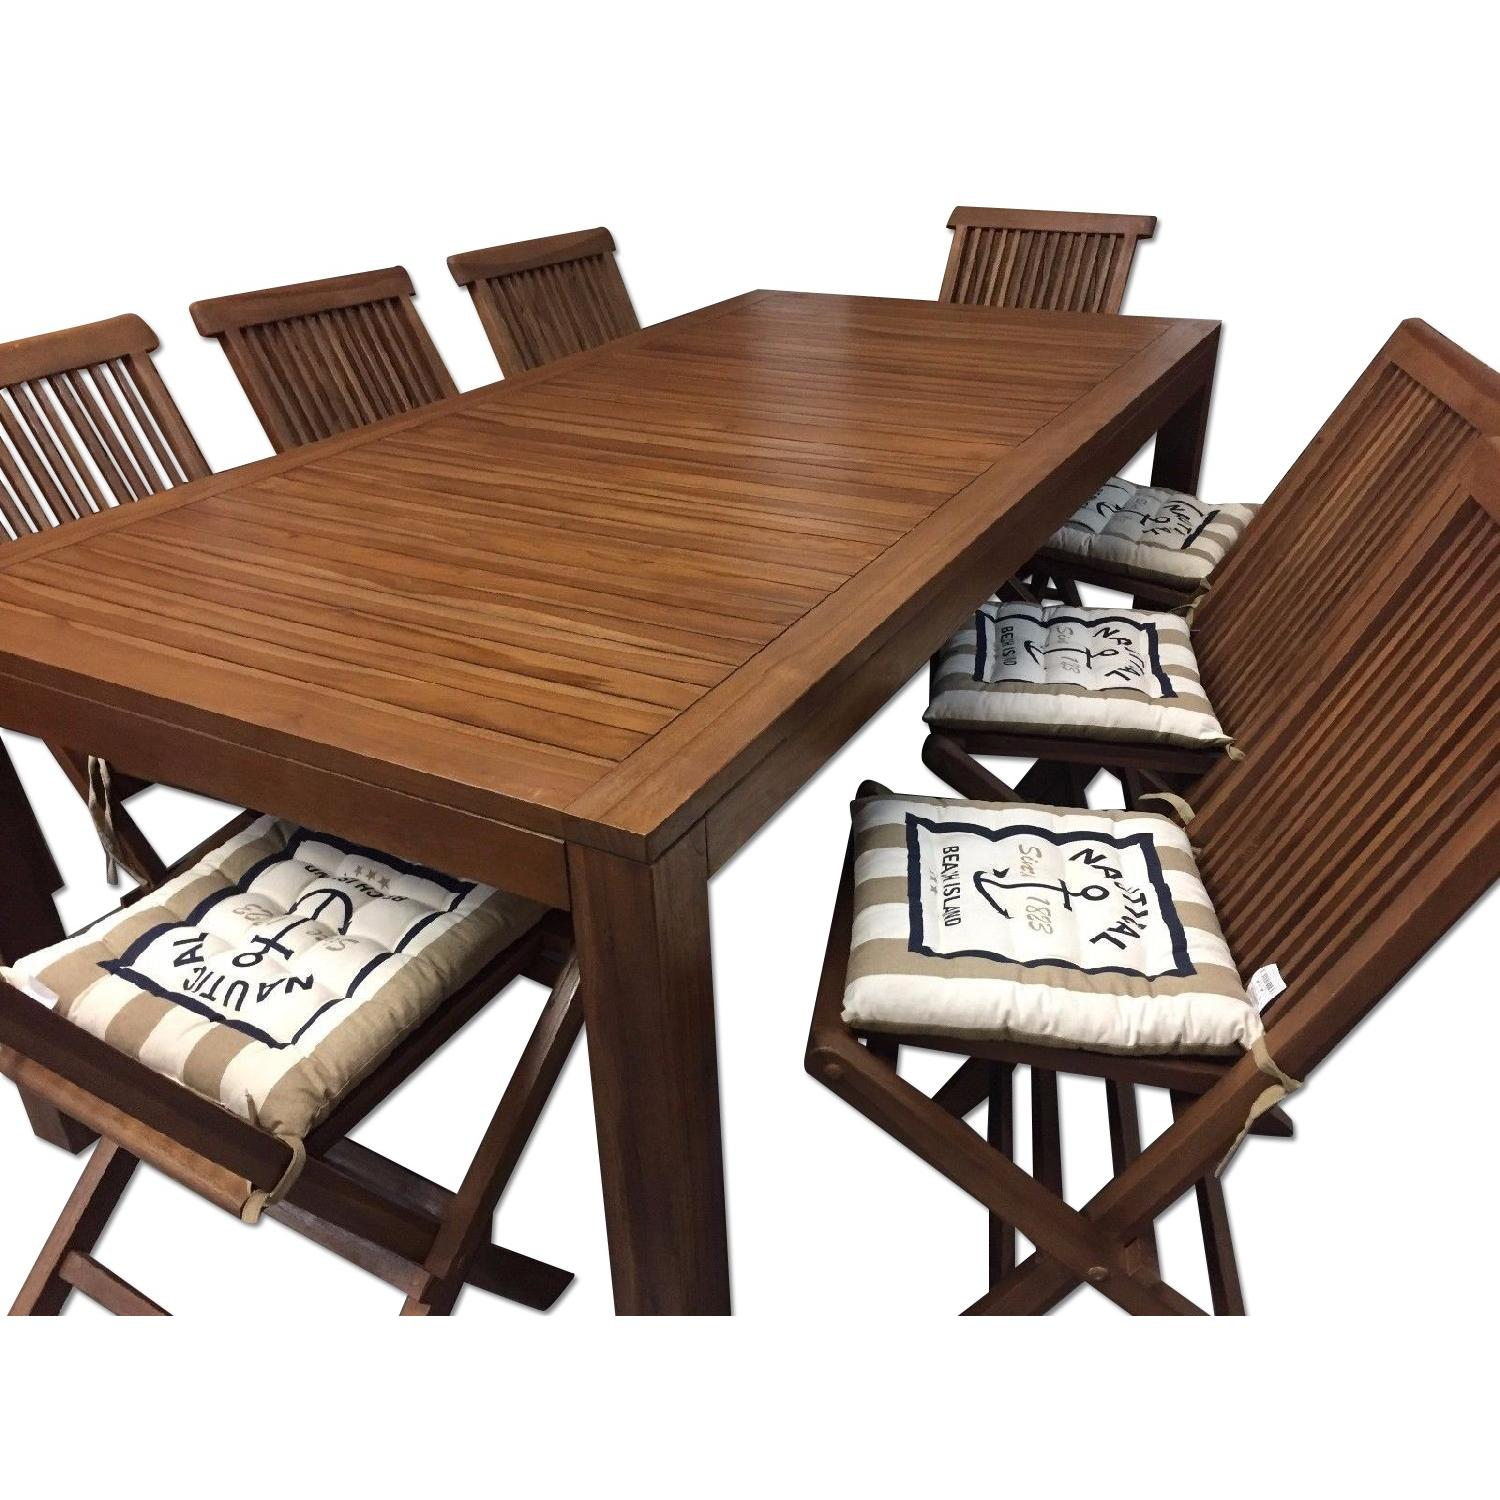 Teak Wood Patio Dining Table w/ 6 Chairs